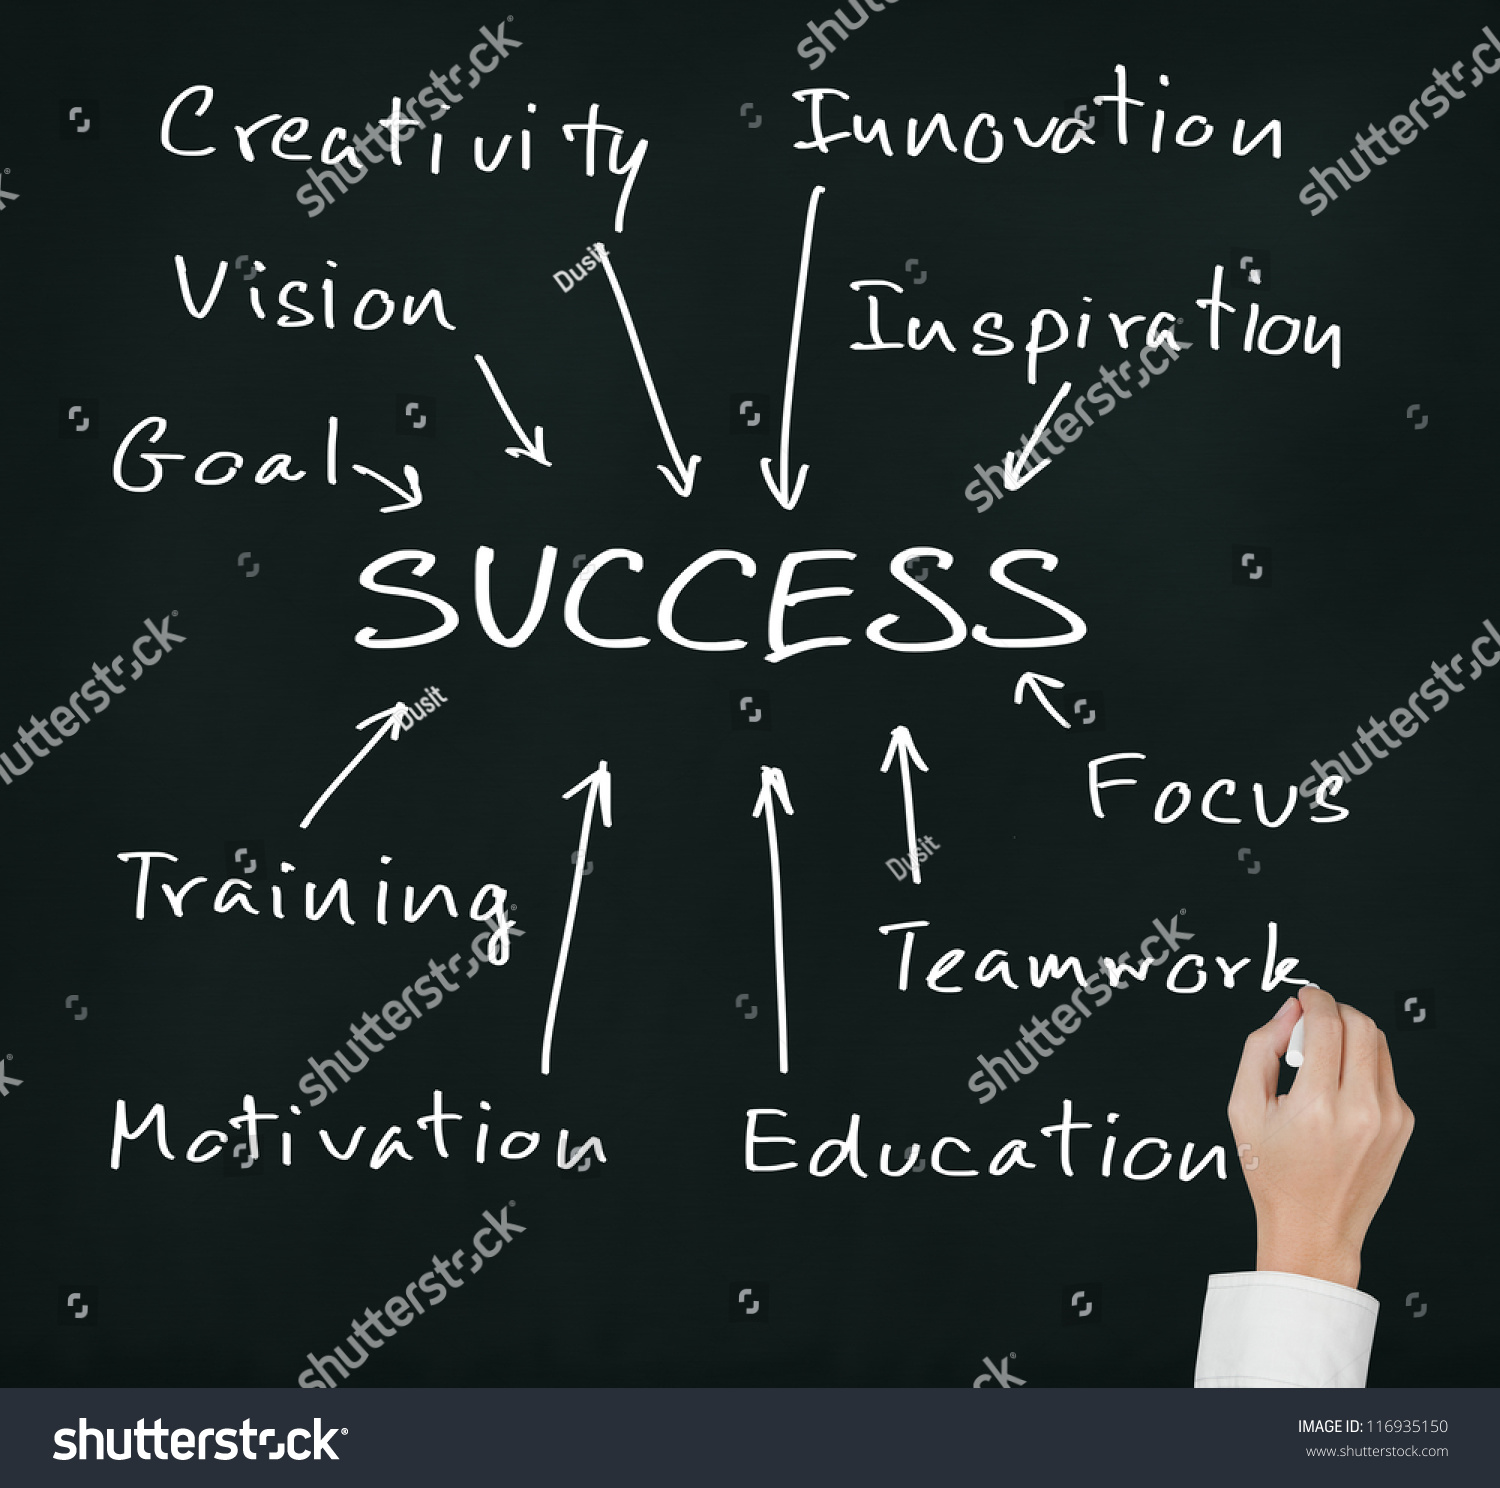 business hand writing success concept by stock photo  business hand writing success concept by goal vision creativity teamwork focus